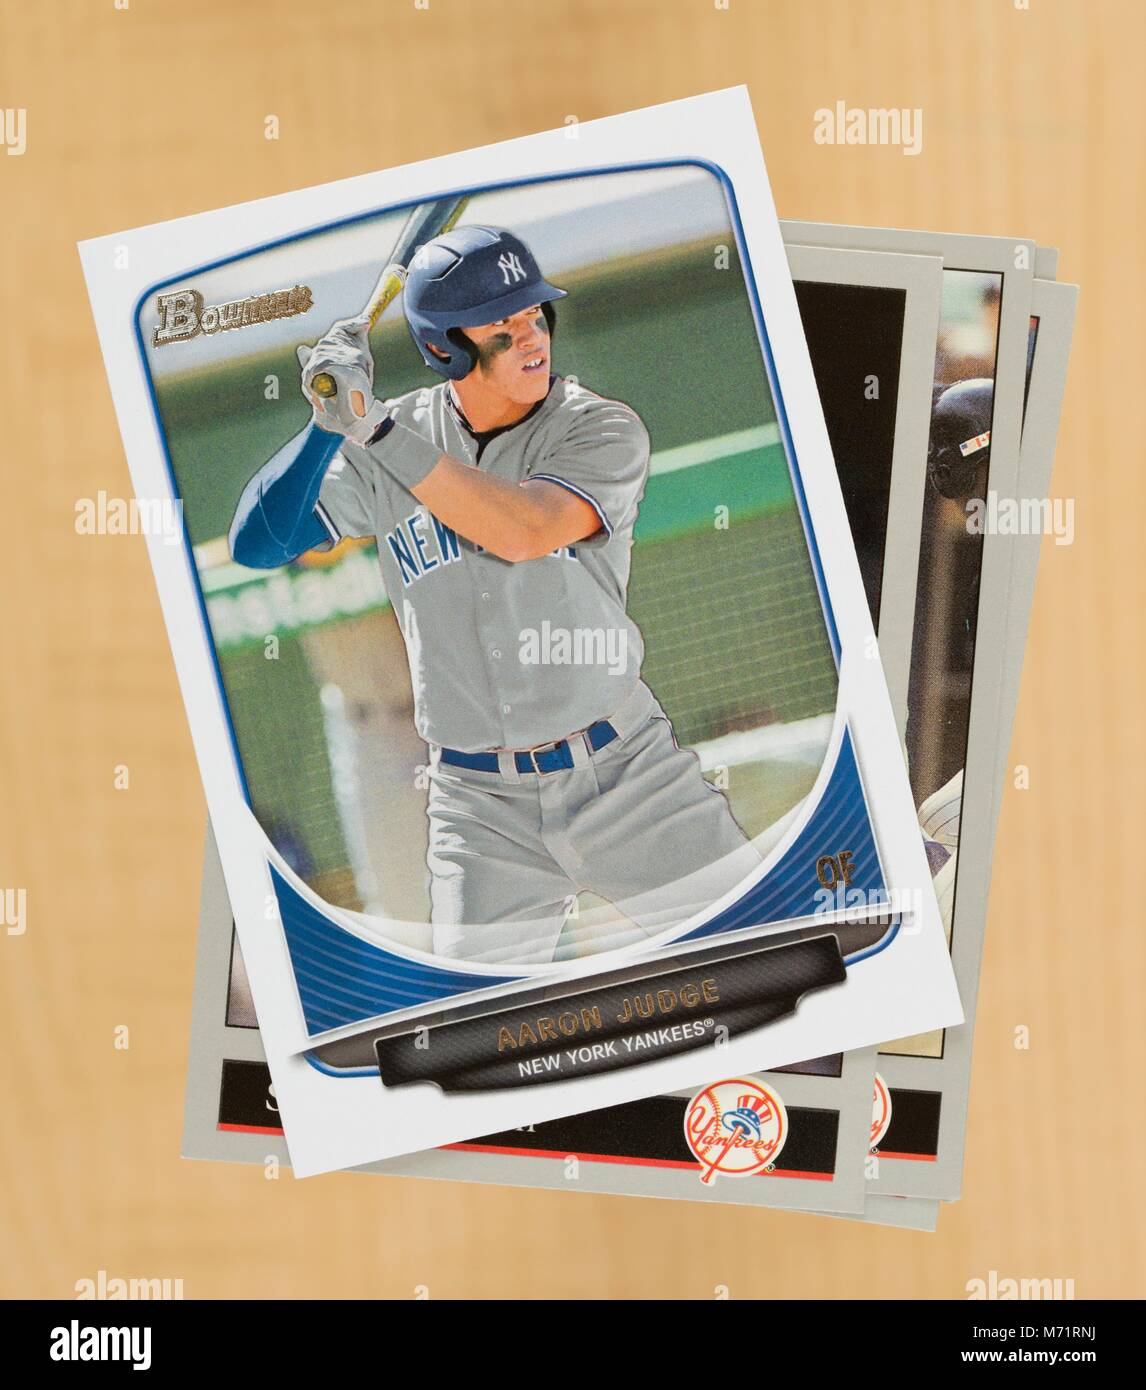 Aaron Judge Of The New York Yankees 2013 Bowman Rookie Card